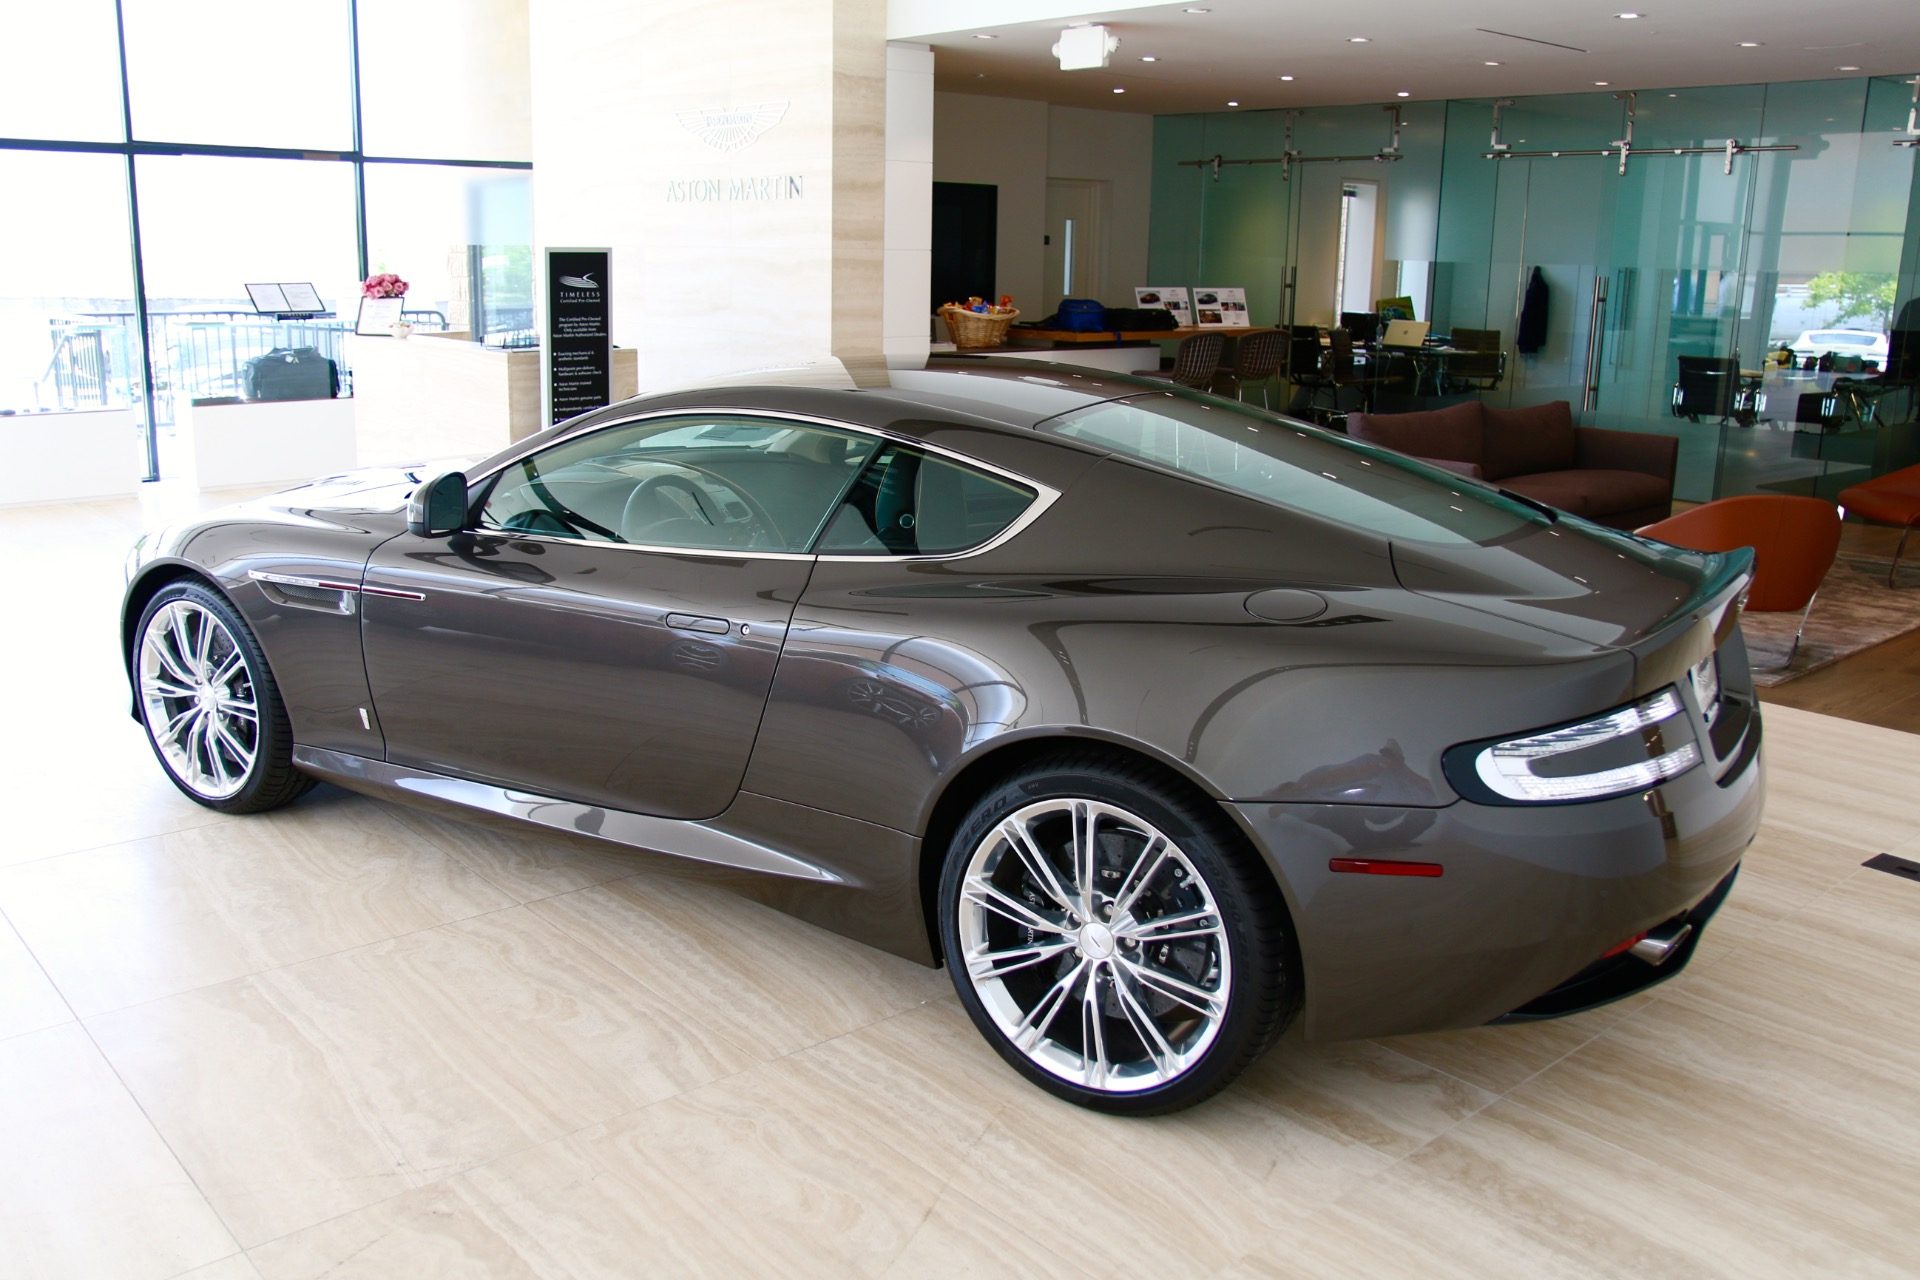 2016 aston martin db9 gt [1 of 9] stock # 6na17493 for sale near